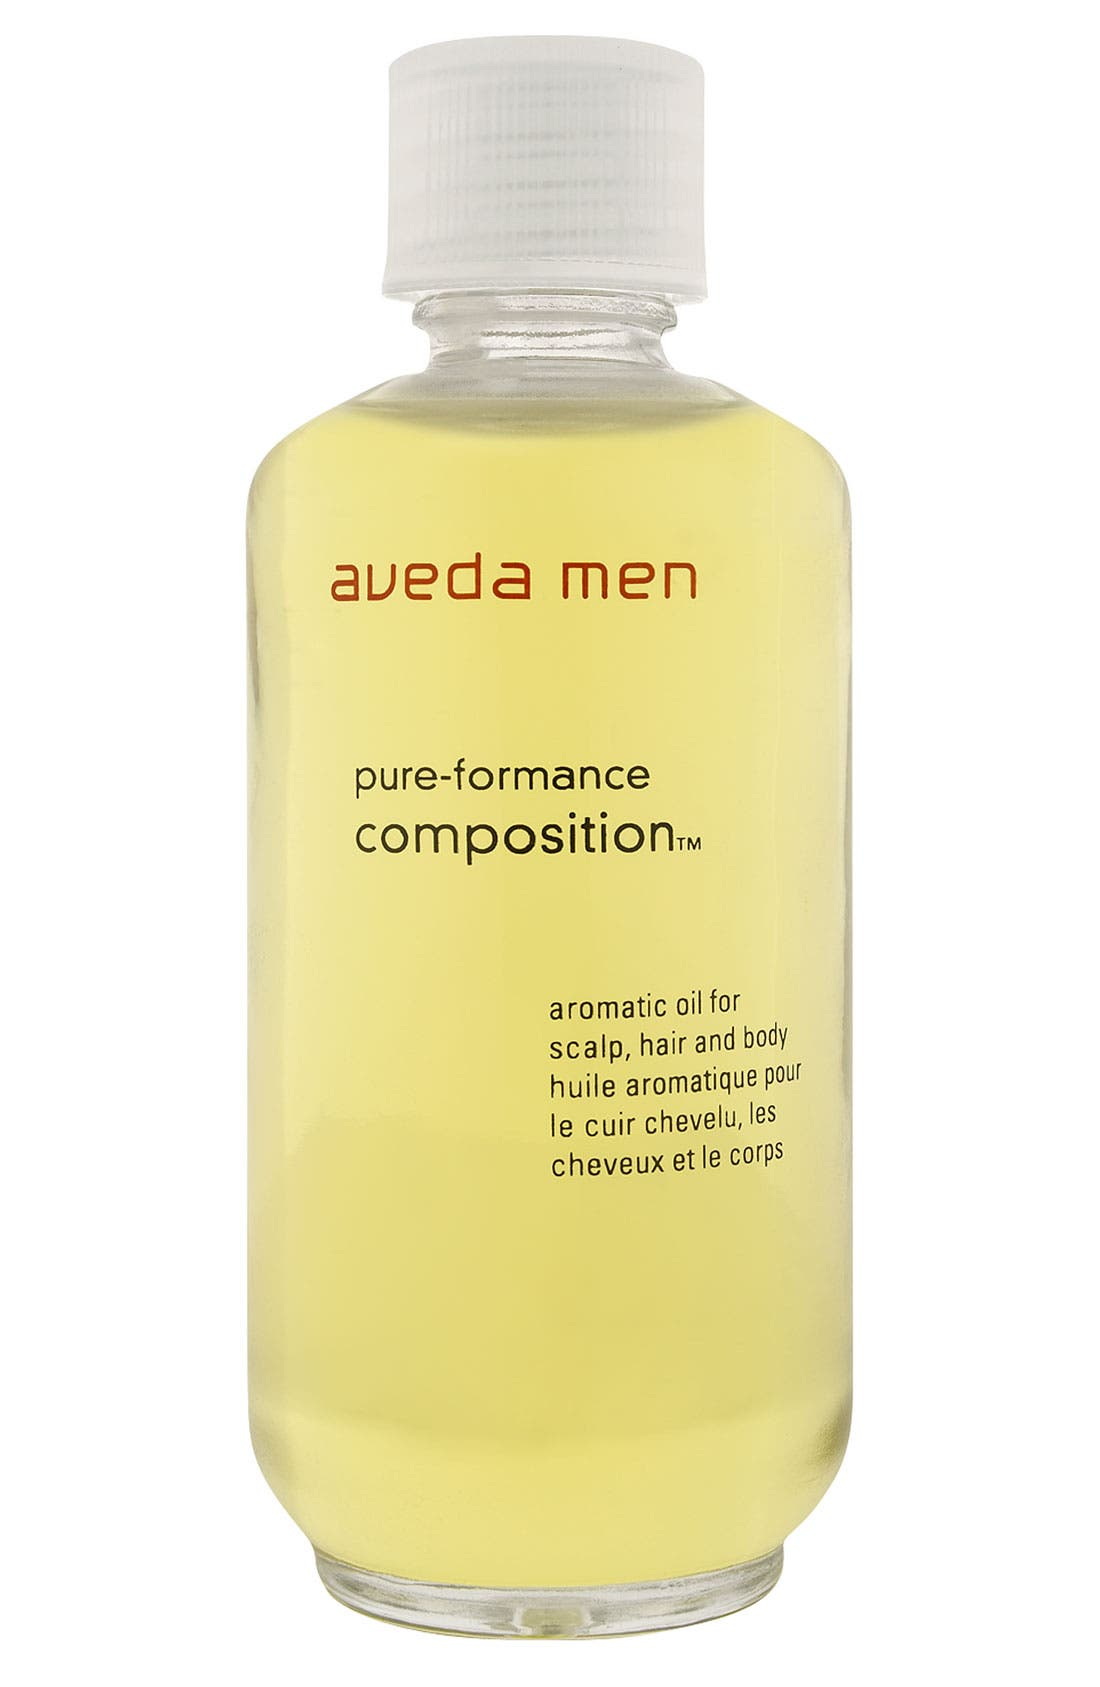 Aveda Men pure-formance™ composition™ Essential Oil